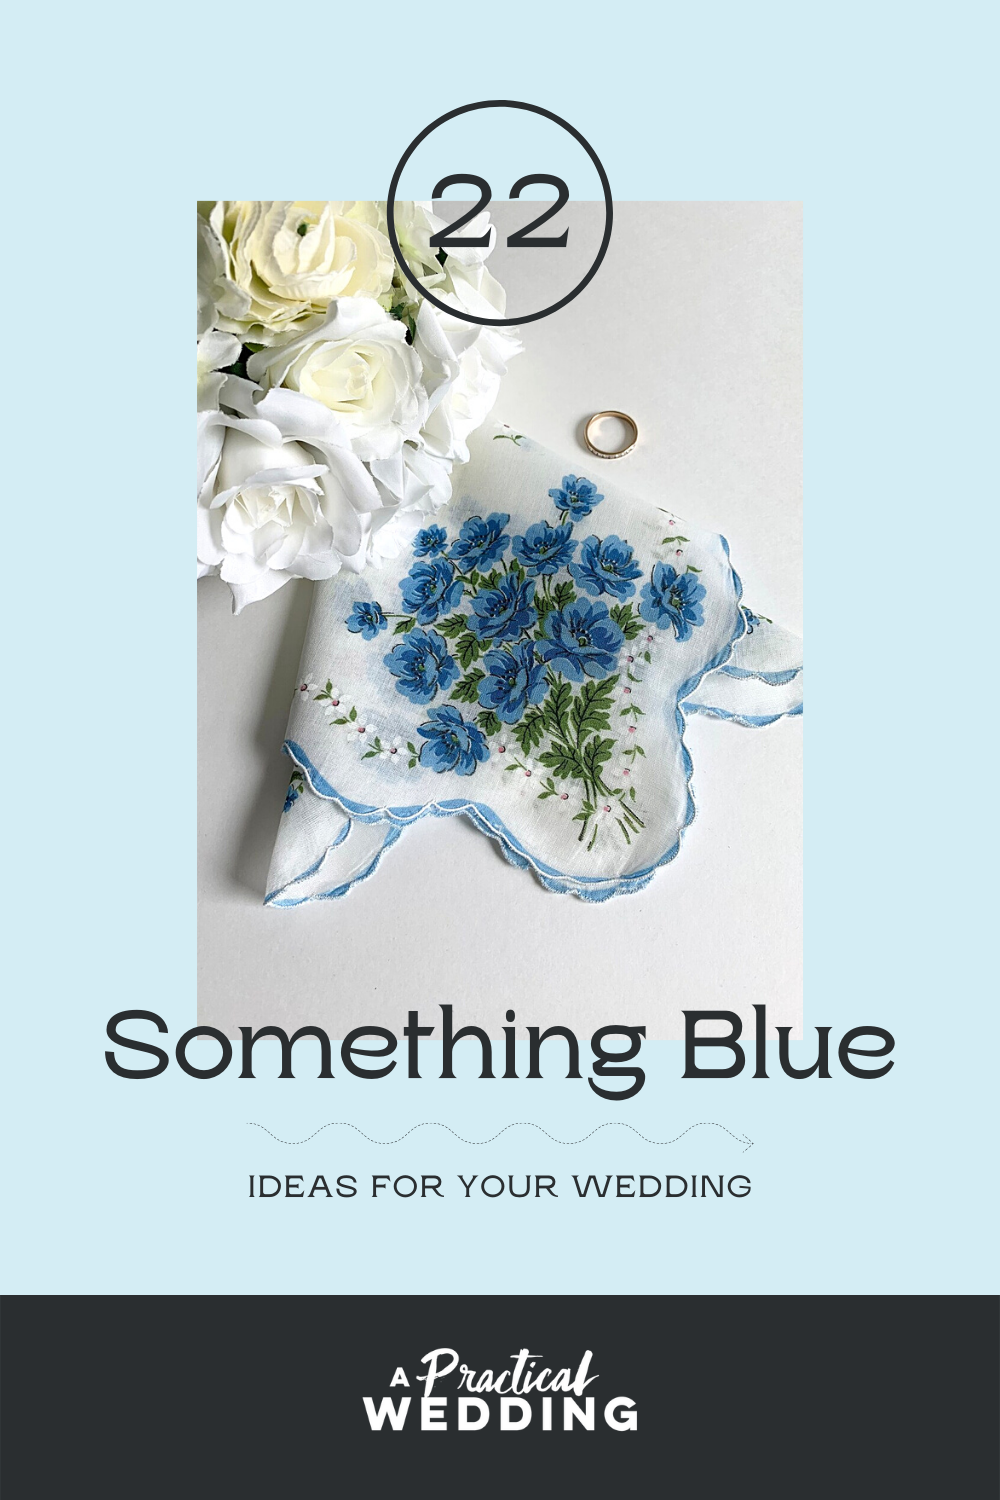 something blue ideas for your wedding graphic with blue handkerchief